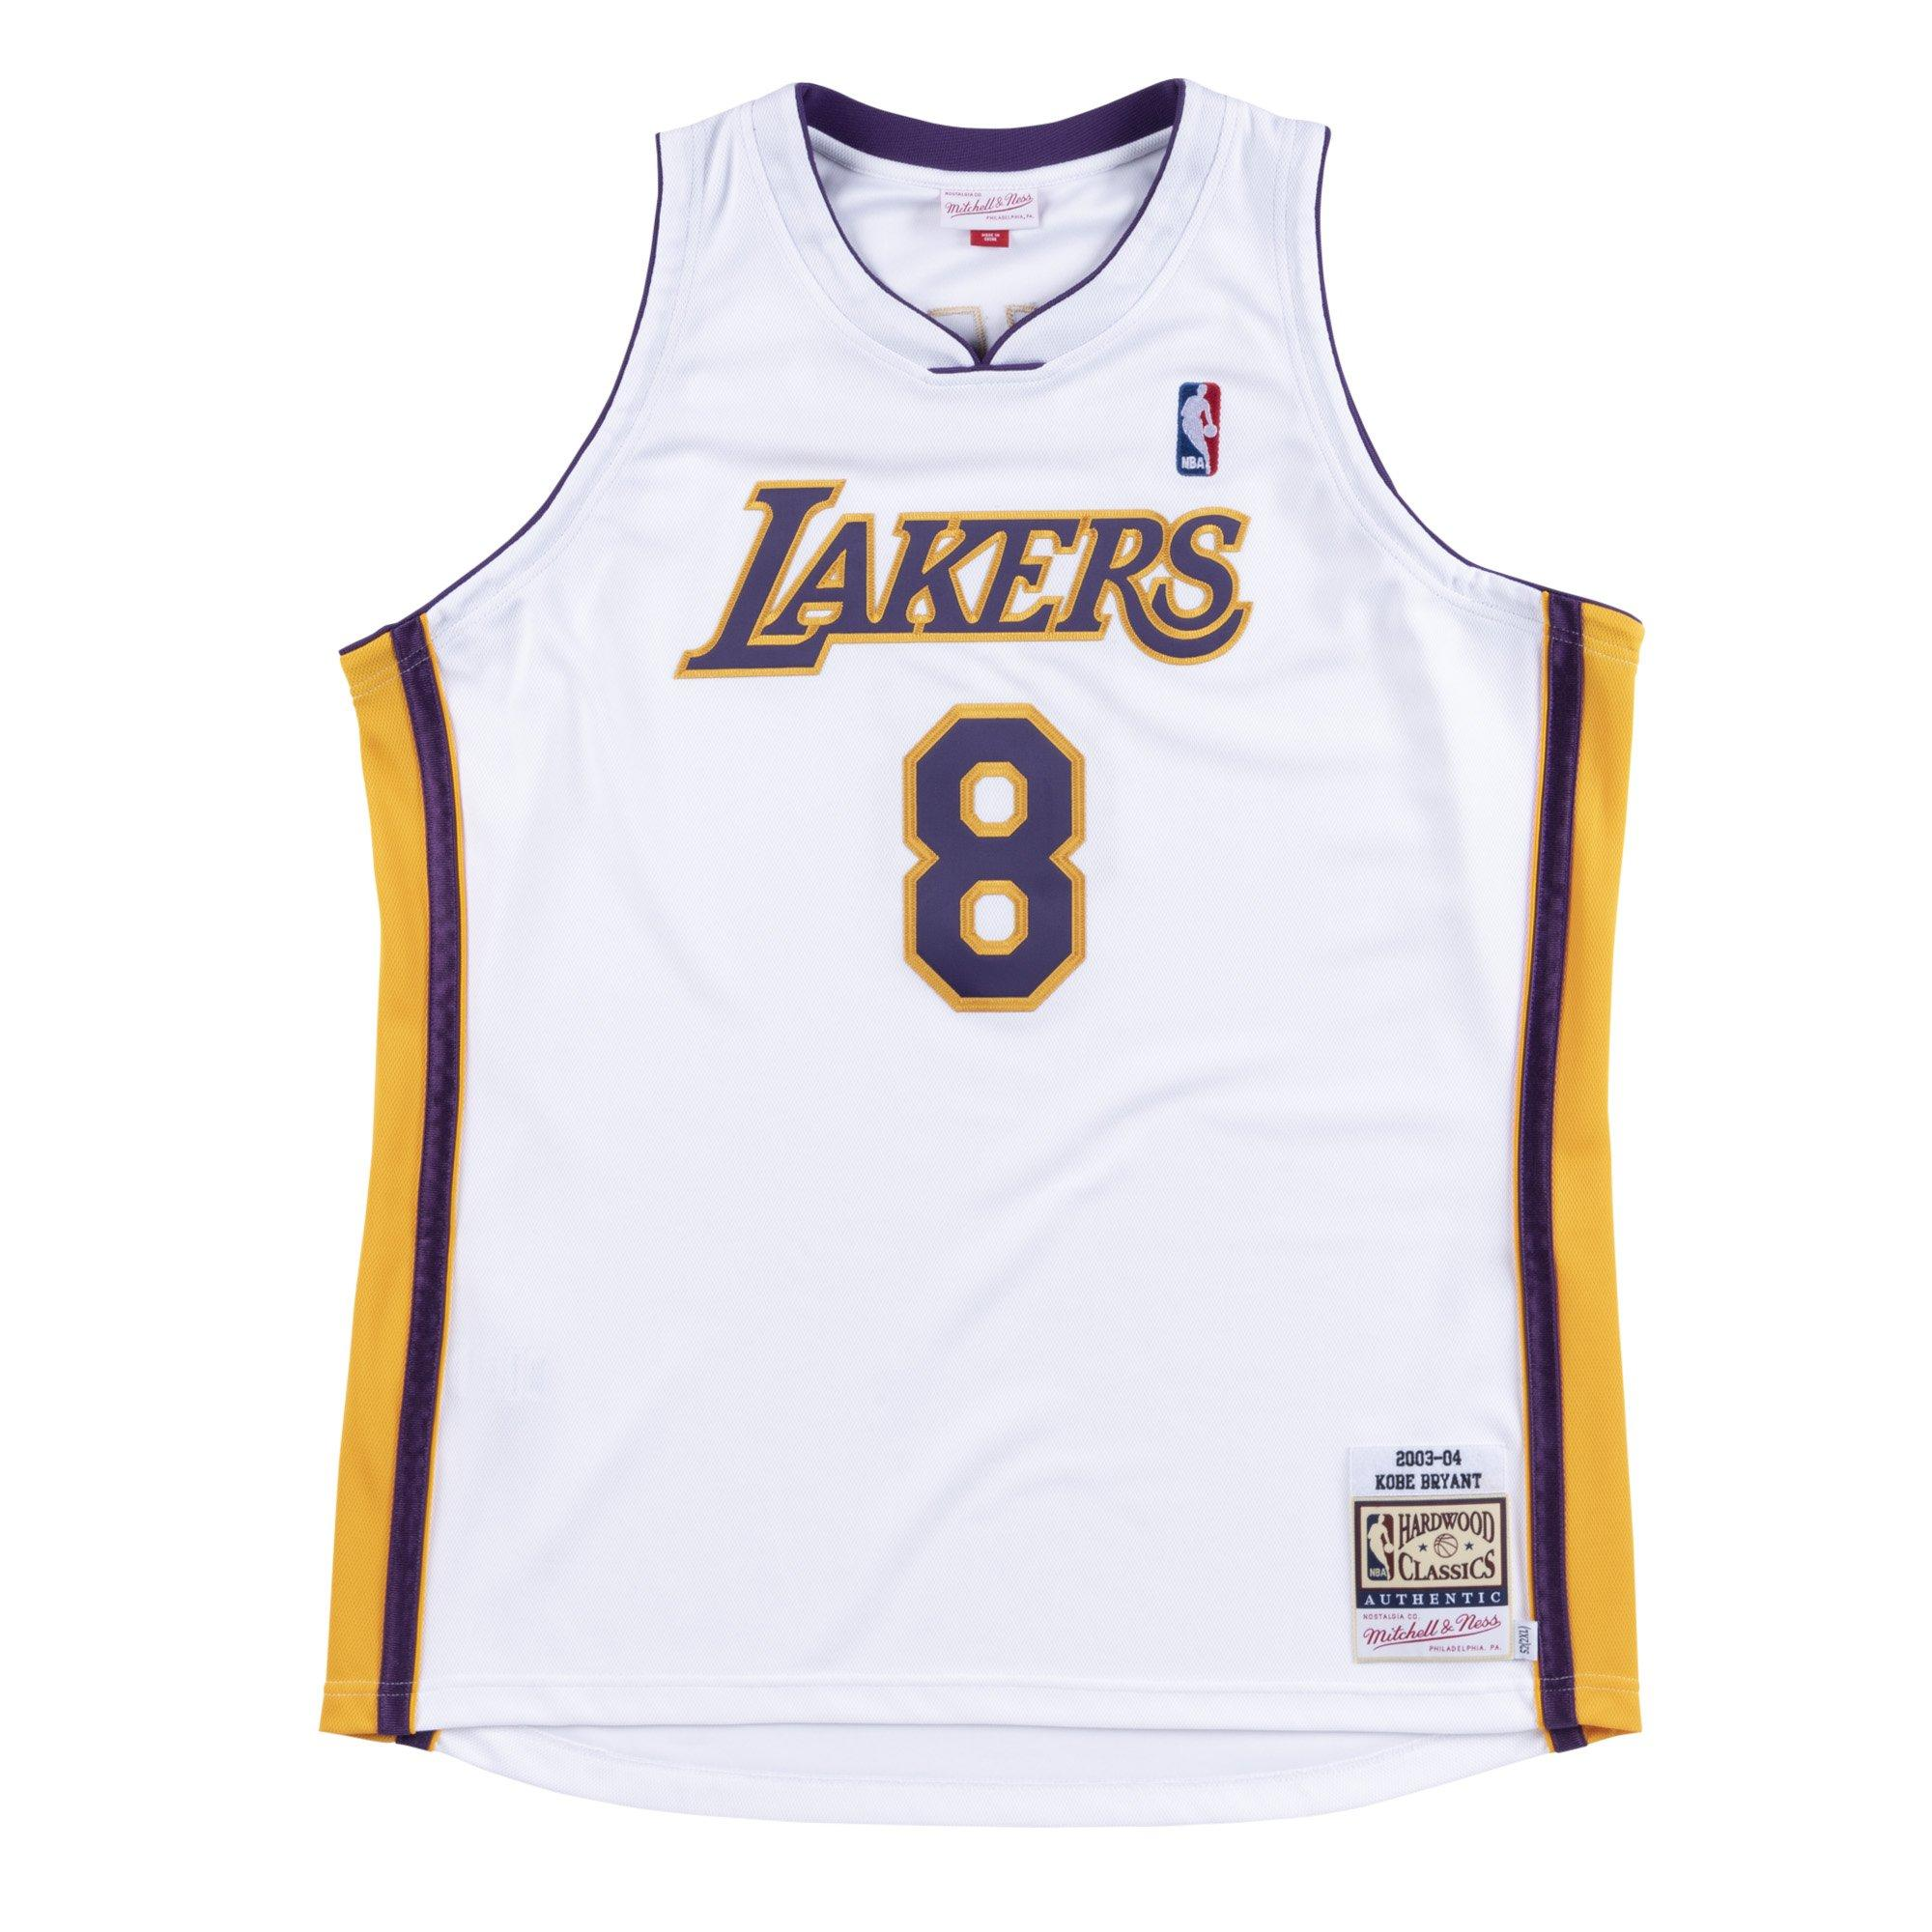 Mitchell & Ness Men's Los Angeles Lakers Kobe Bryant #8 '03-'04 Authentic Jersey